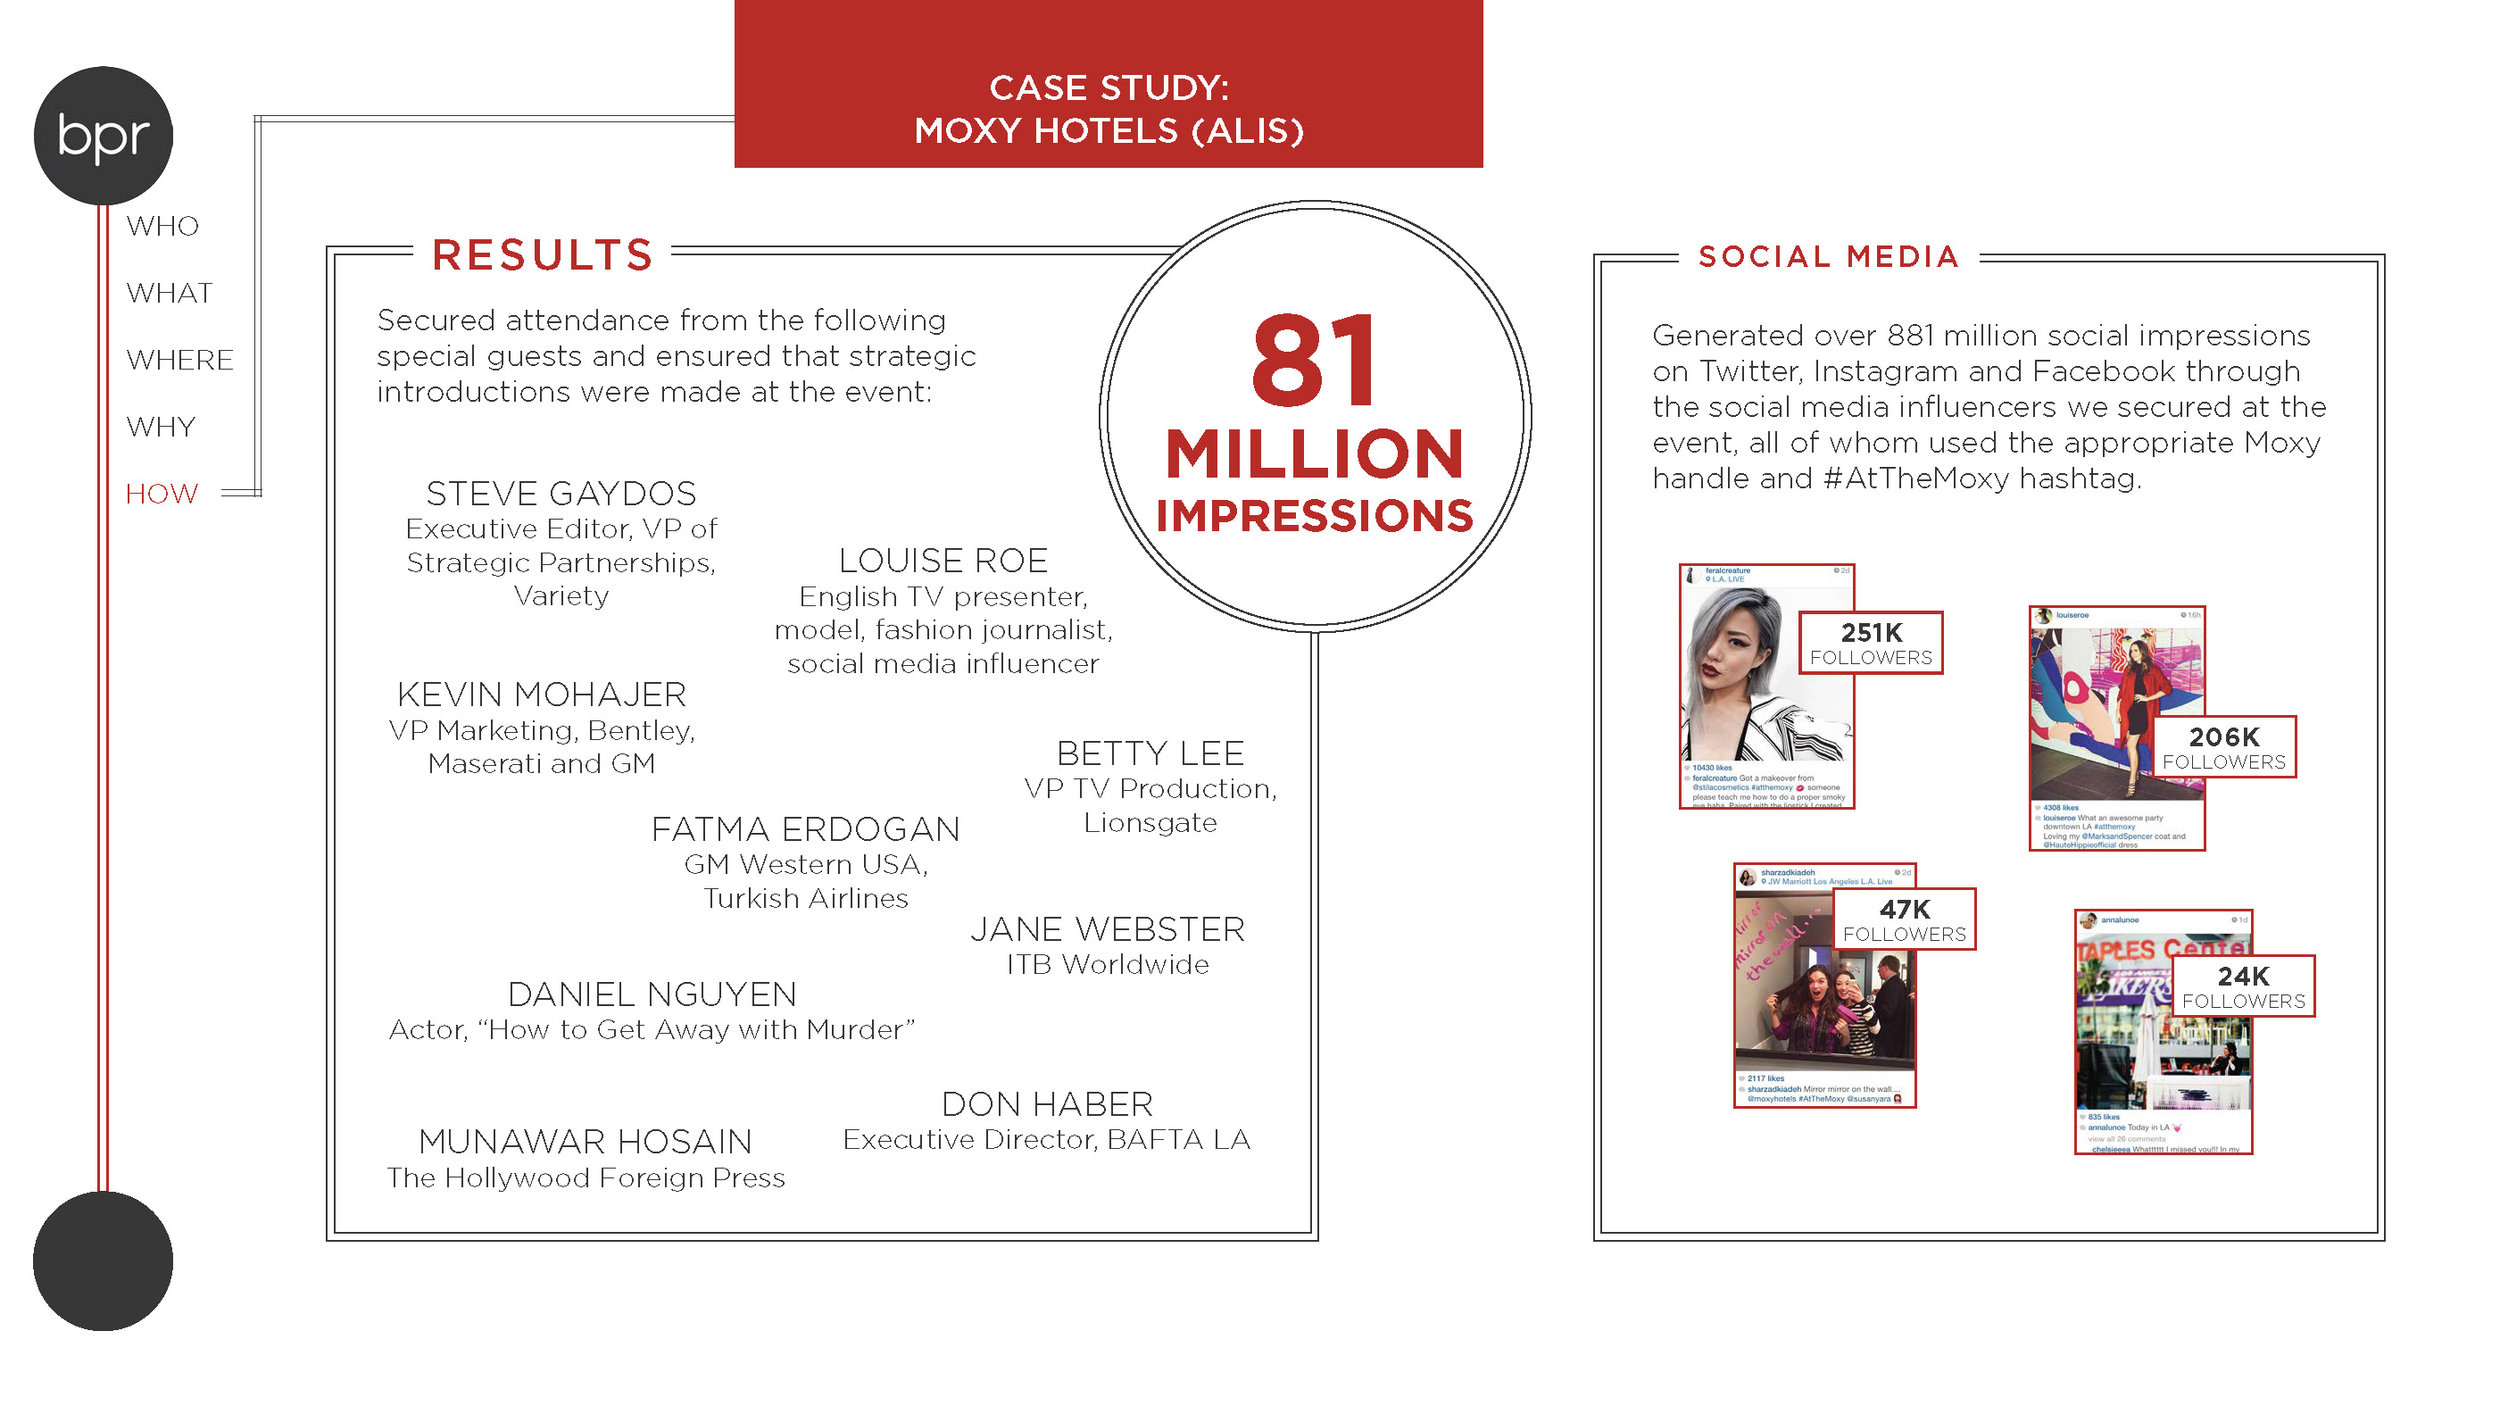 Moxy Alis Case Study_Page_3.jpg